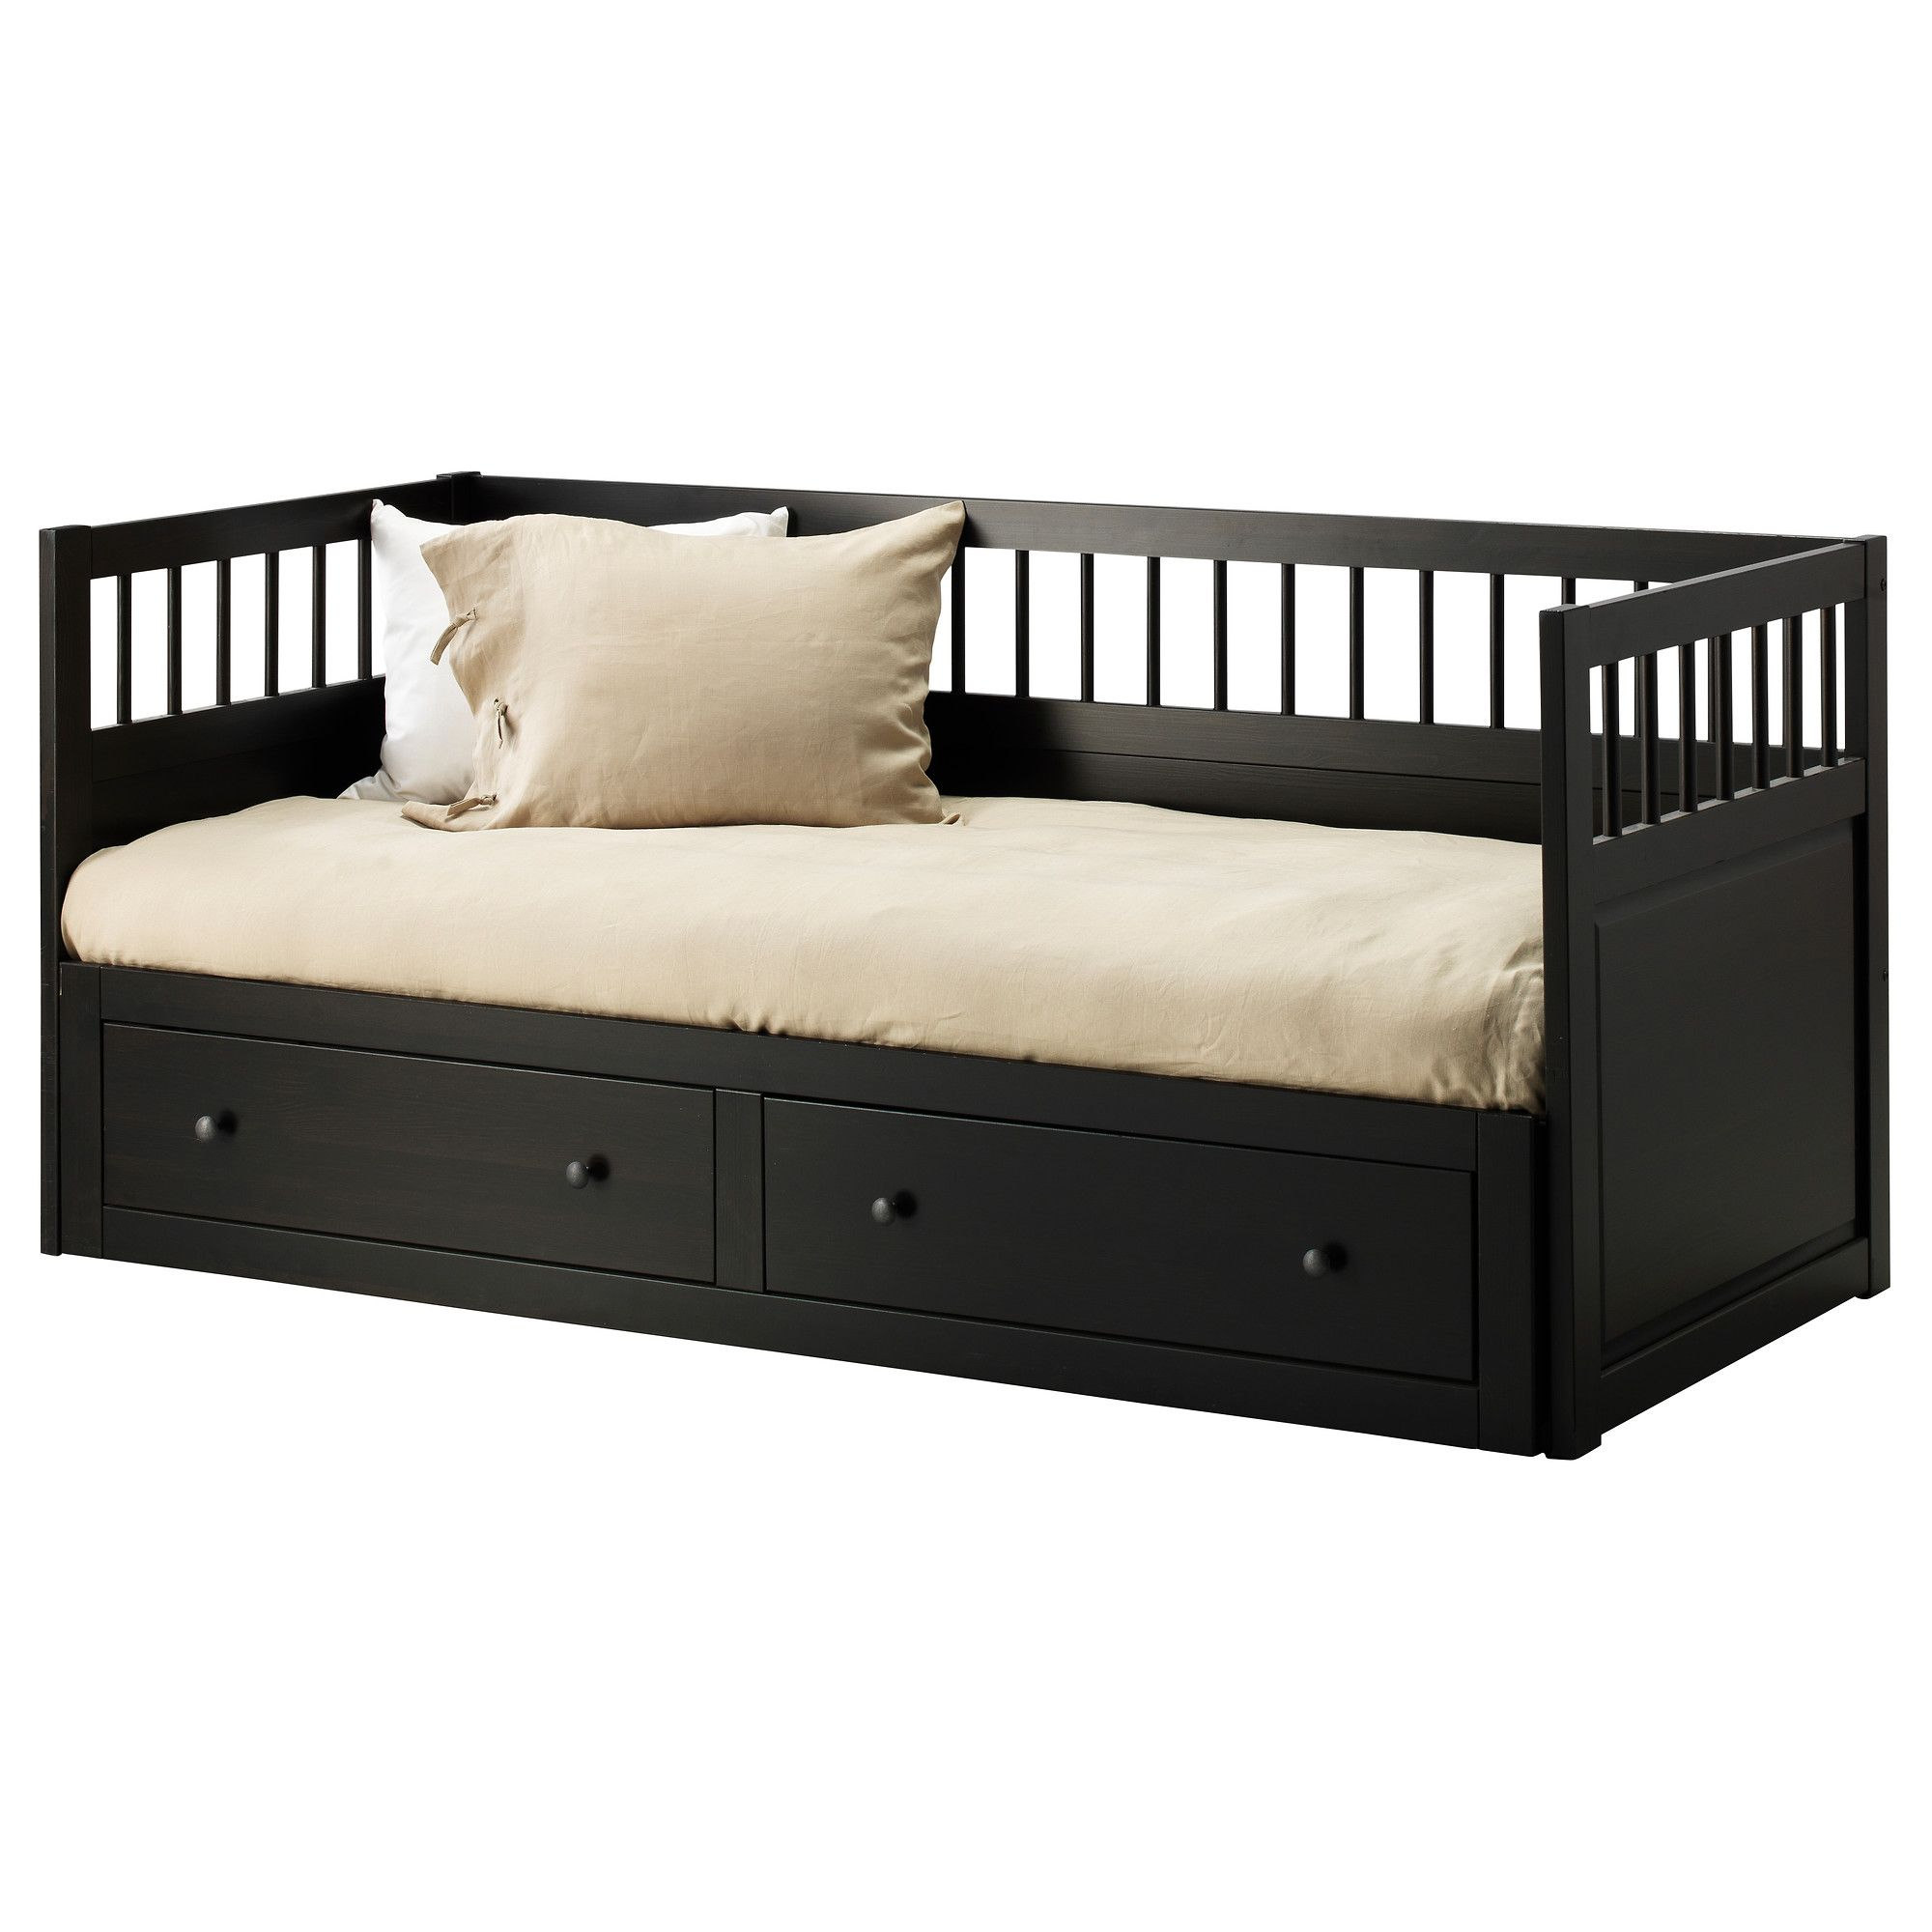 Ikea day beds hemnes home design ideas - Hemnes Daybed Frame With 2 Drawers Ikea For When The Kiddies Are Sick And Need